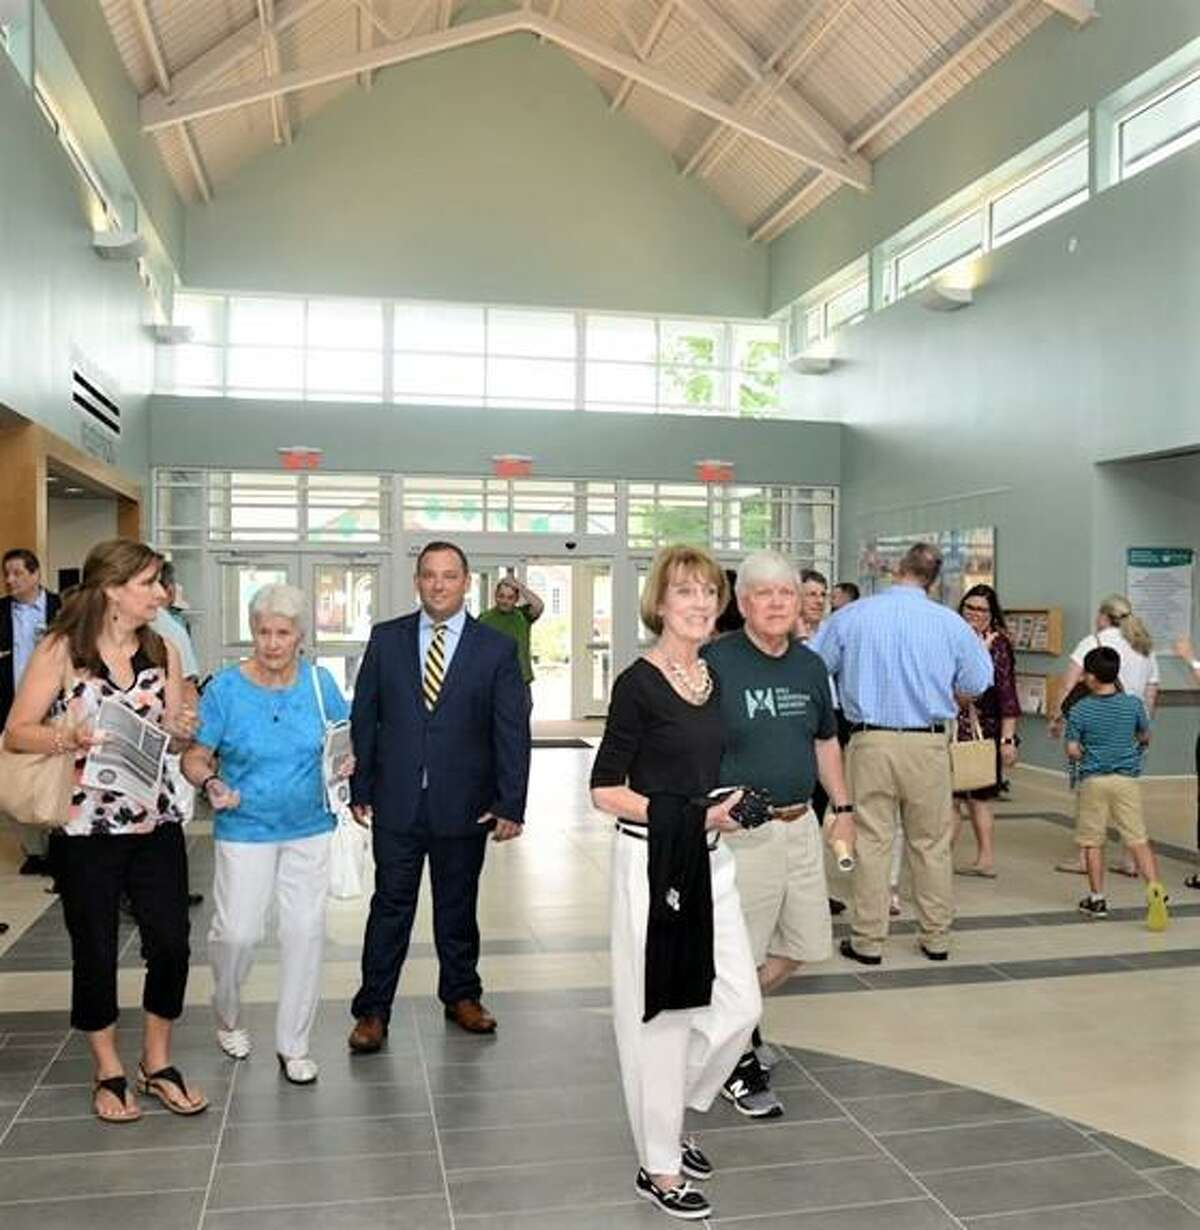 Newtown's newly opened community center.